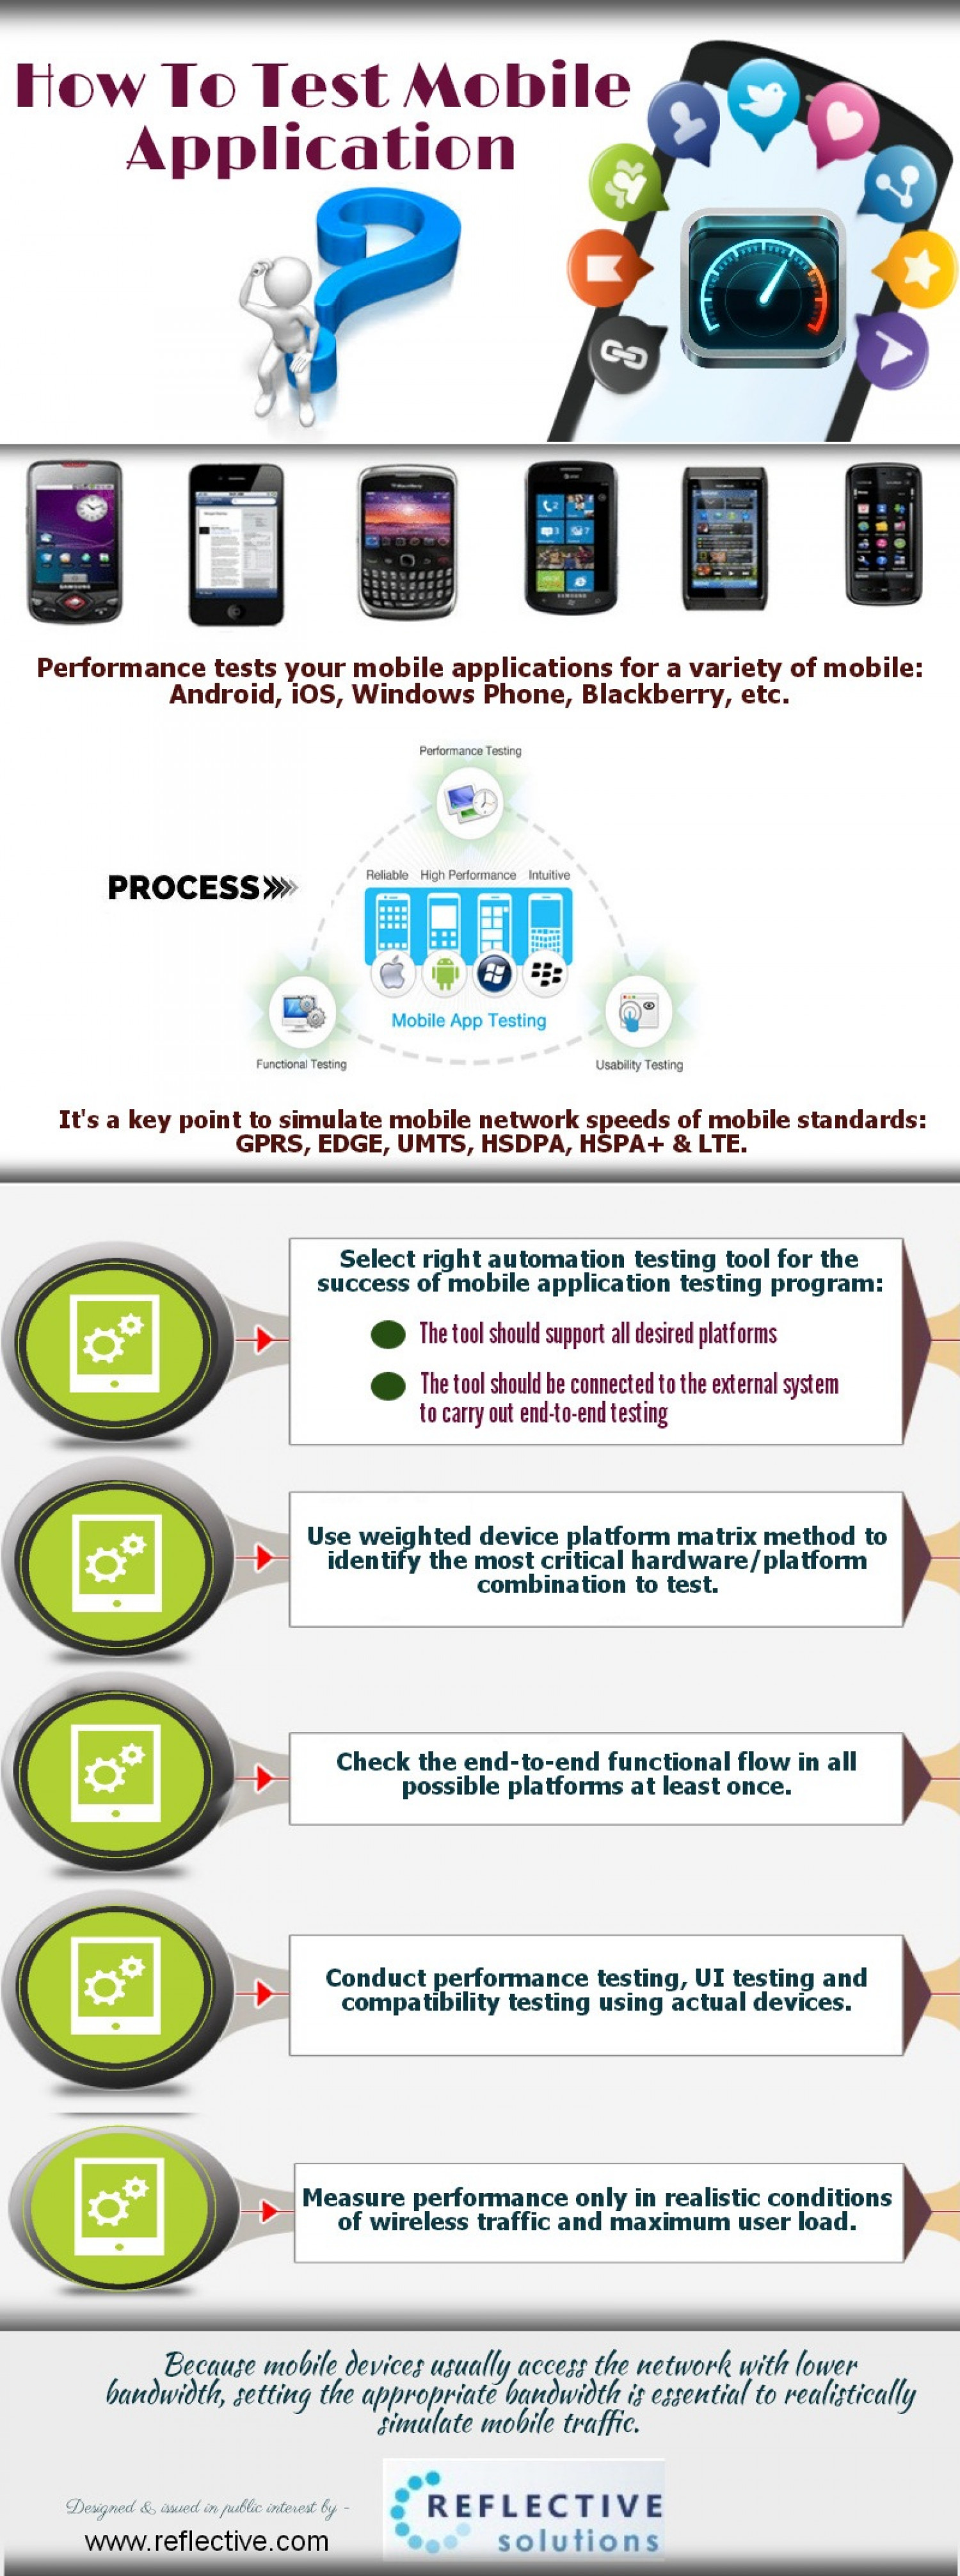 How to Test Mobile Application Infographic